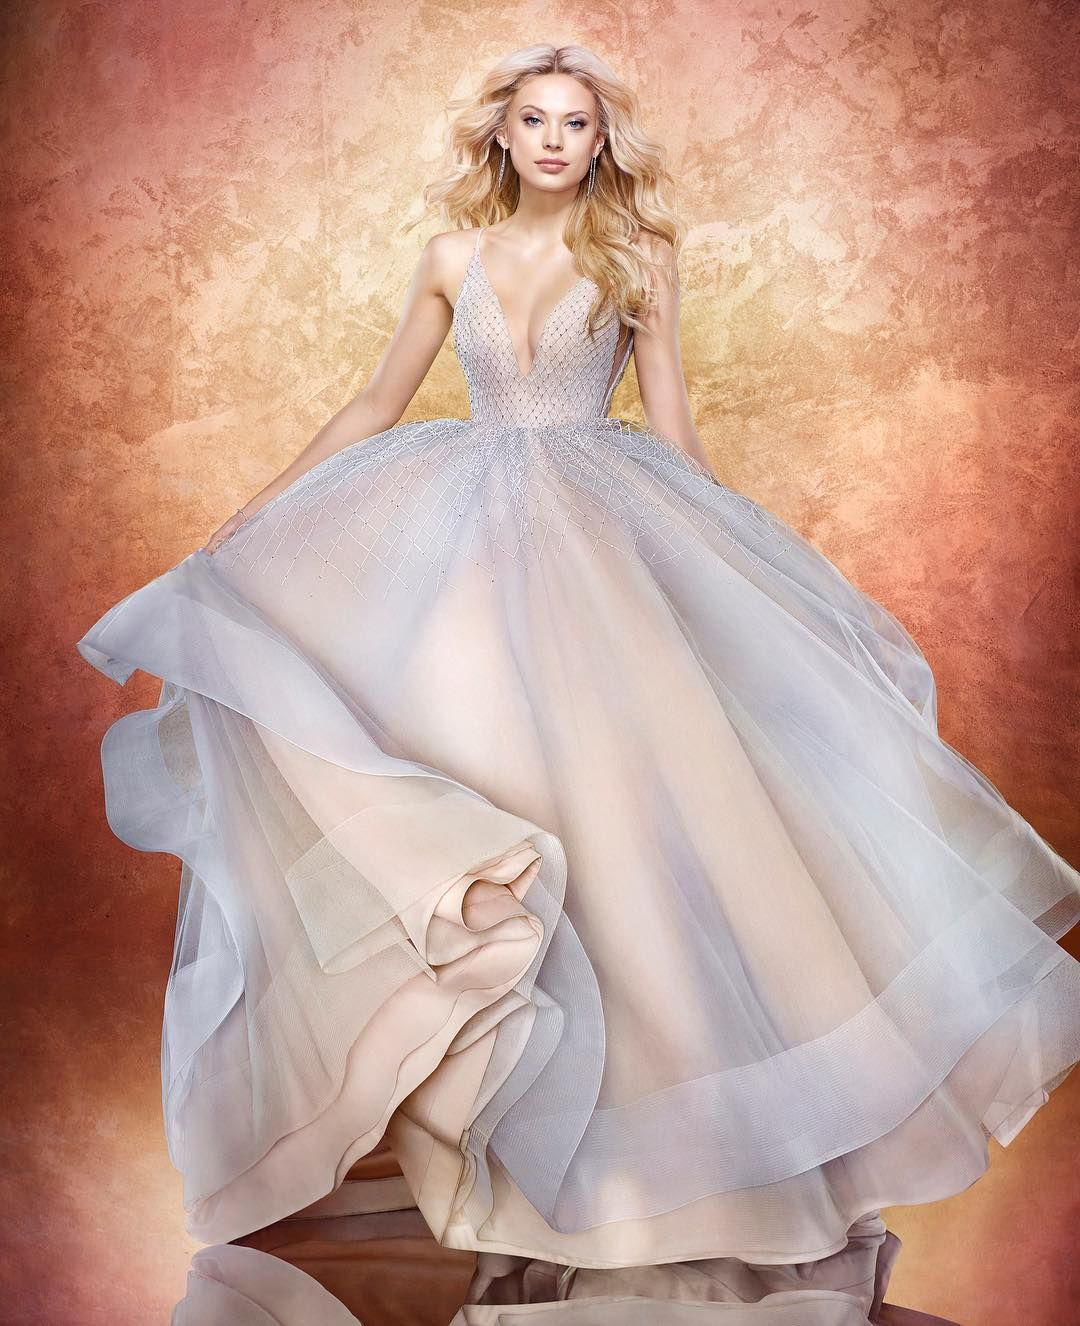 Brides looking for a fairytale gown need look no further than this